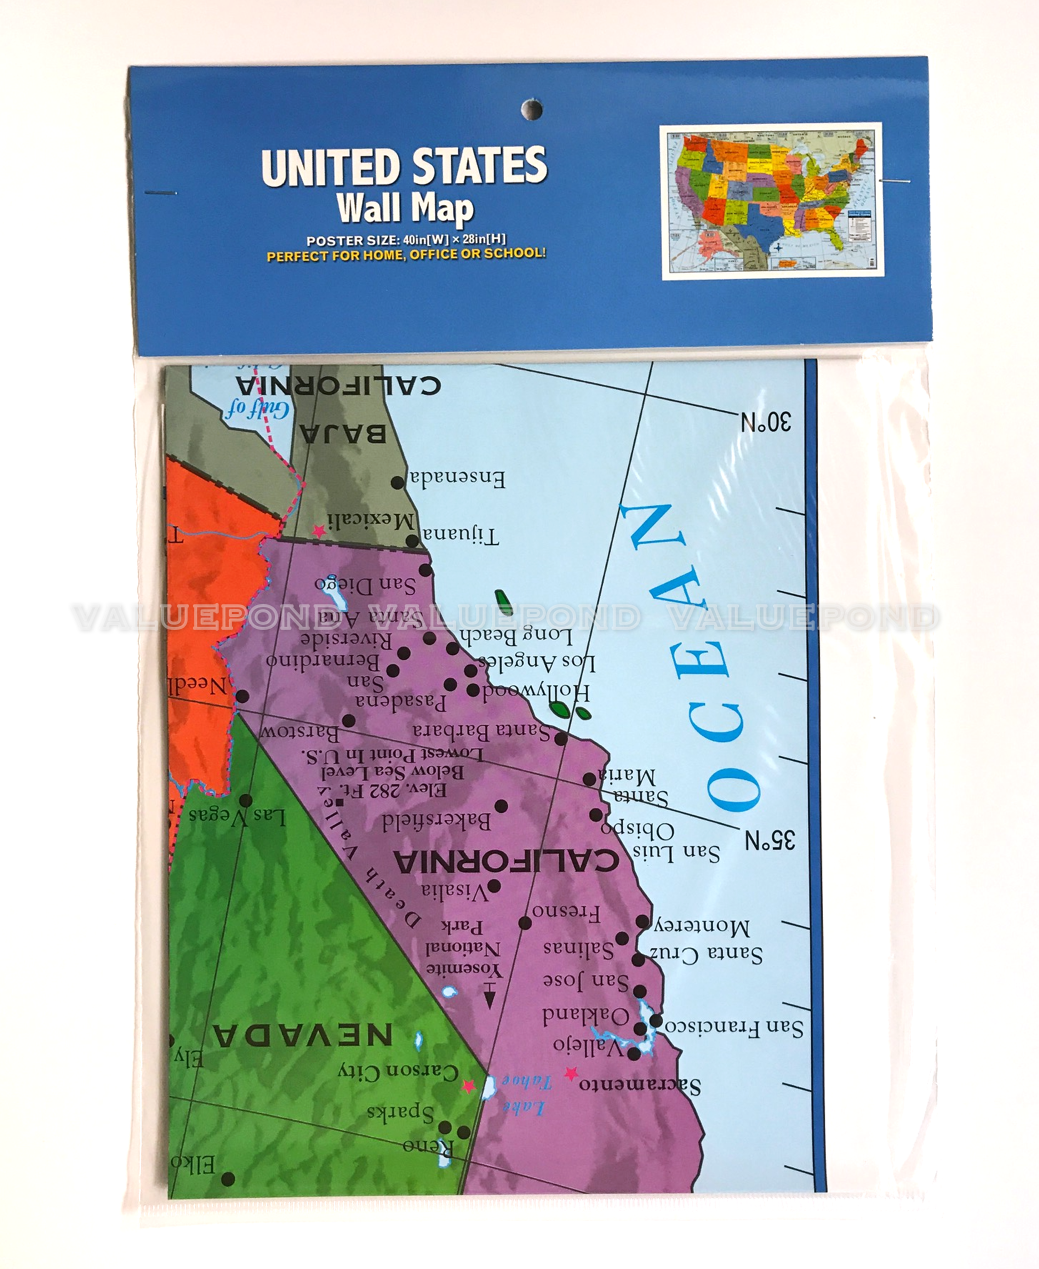 Poster size maps